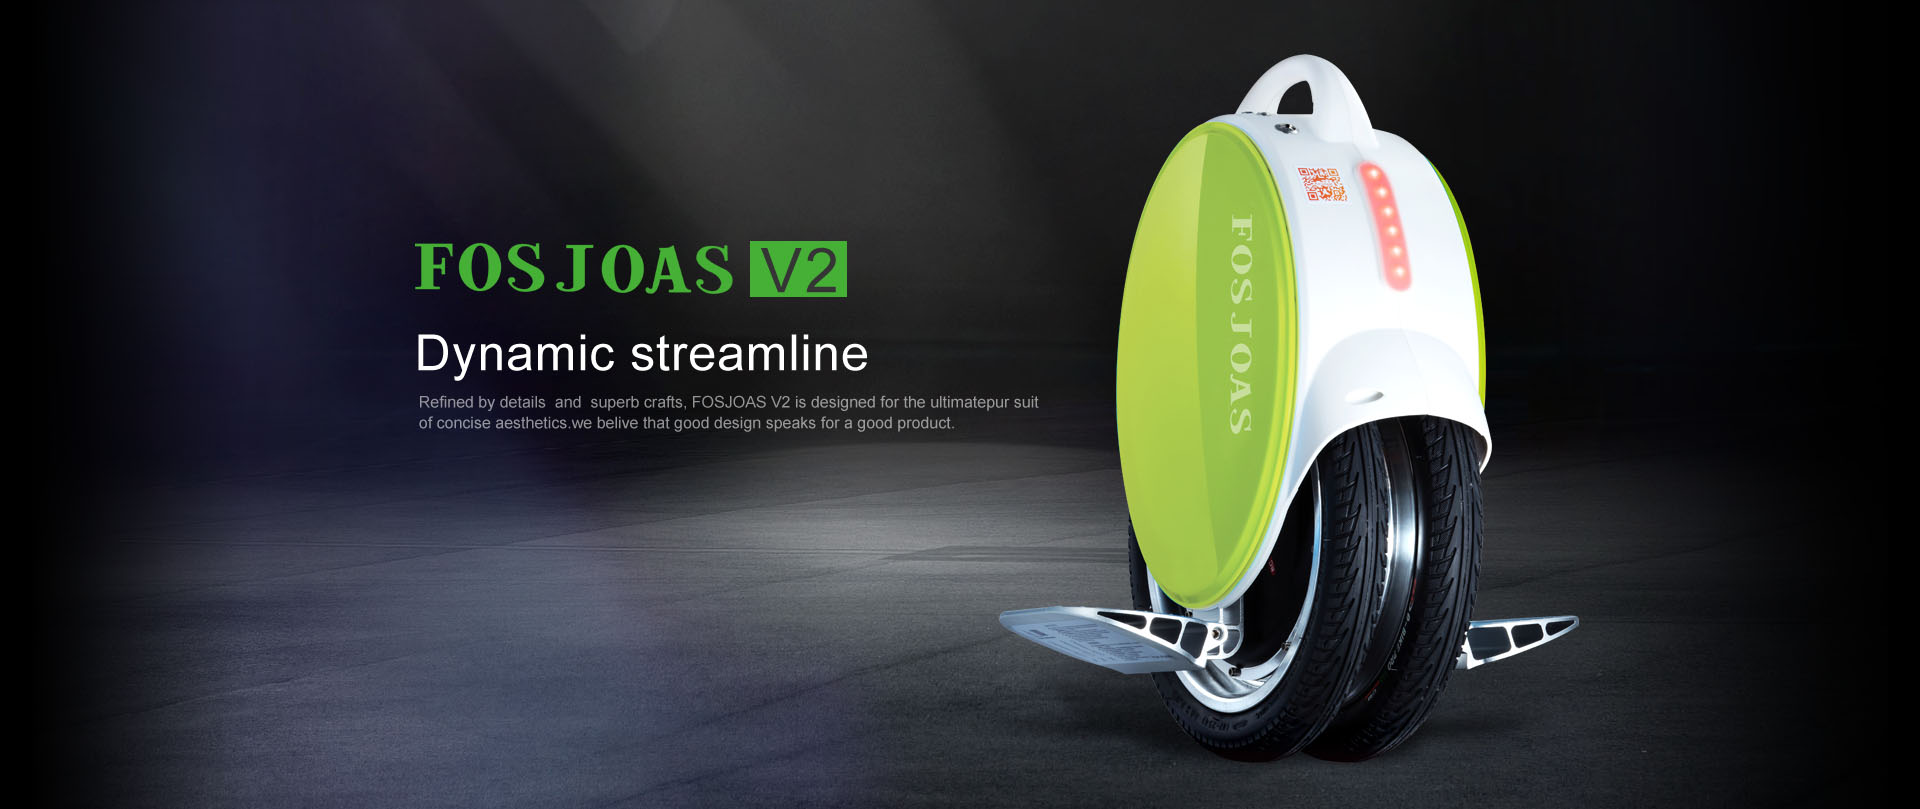 Fosjoas V2 two-wheel balancing electric scooter